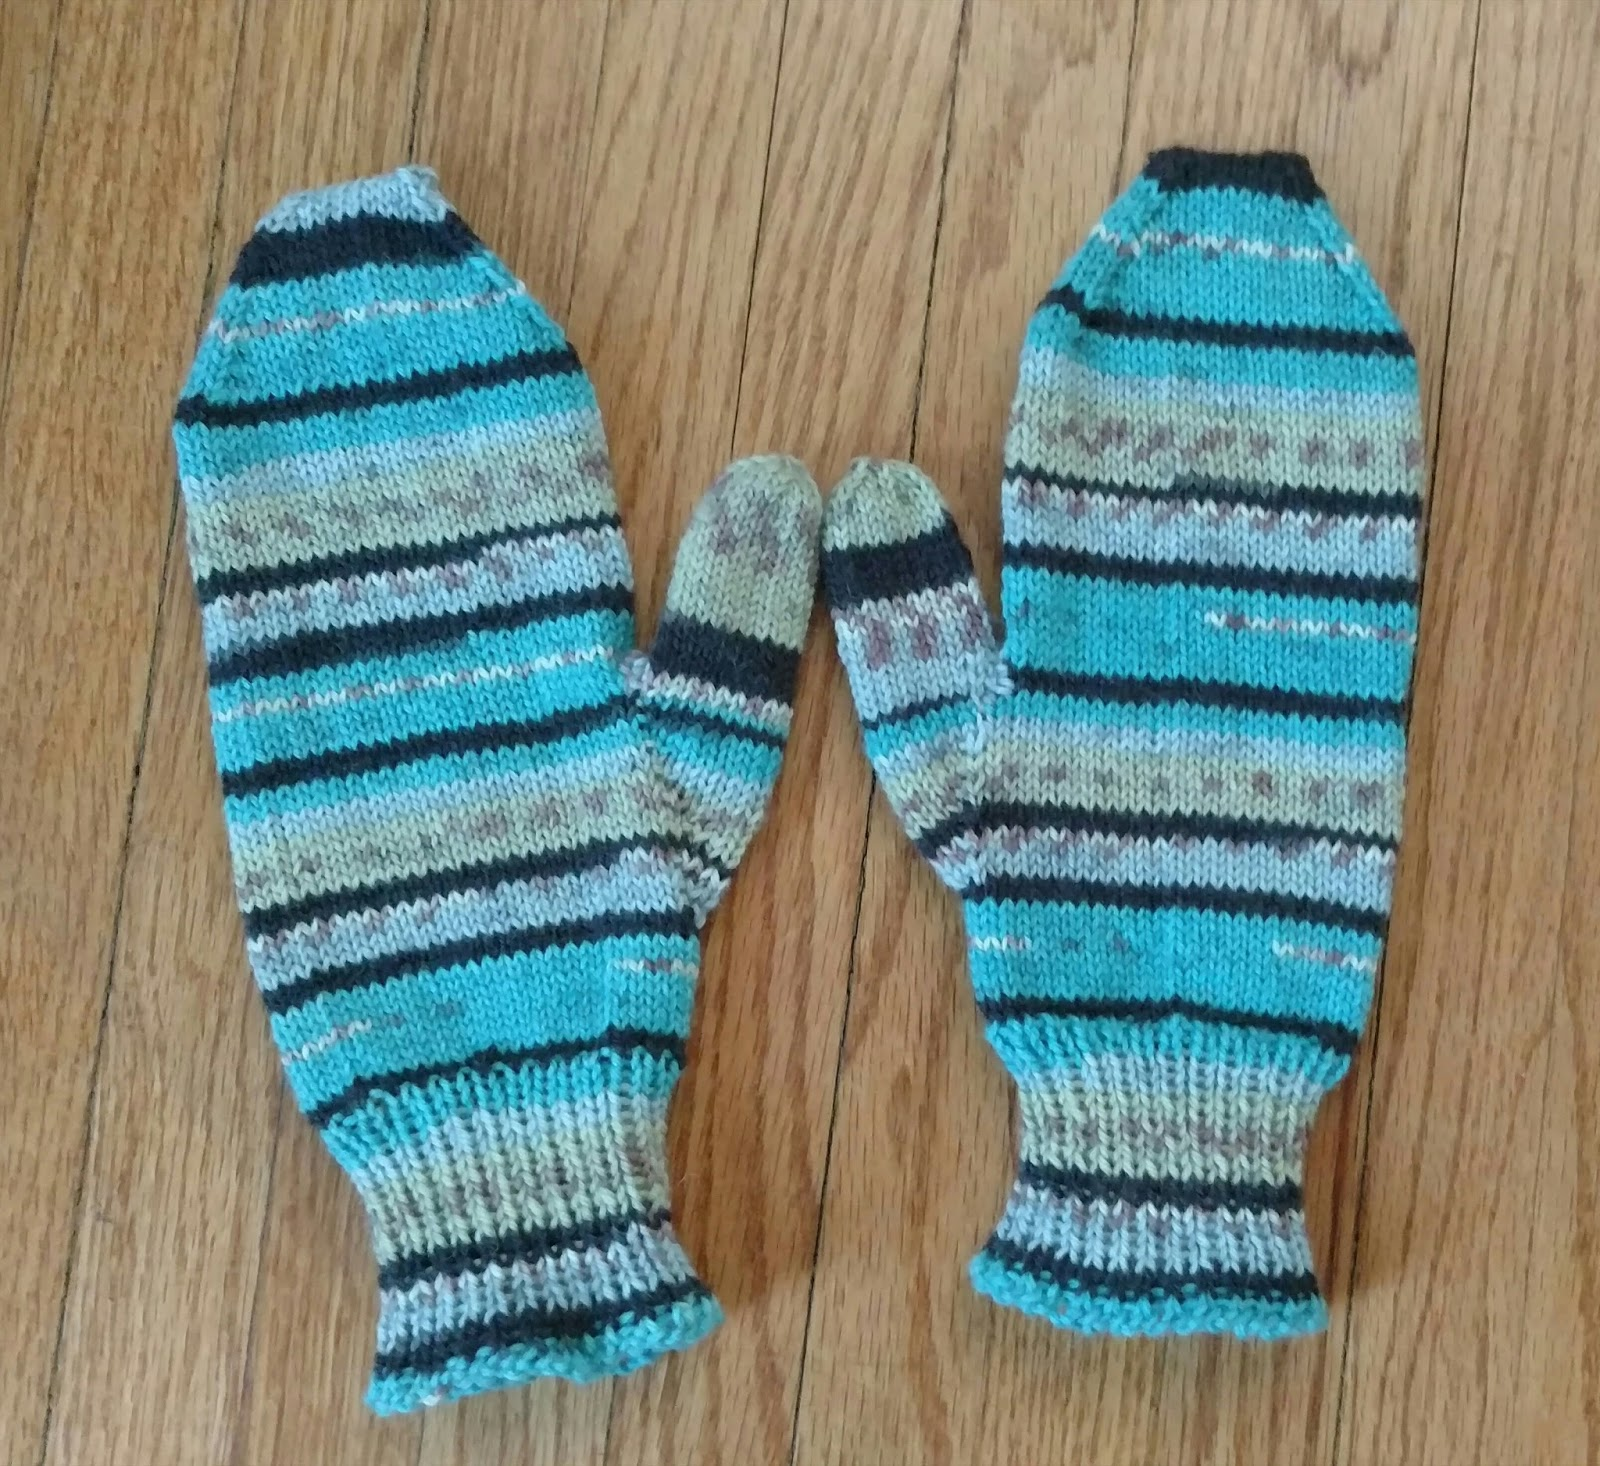 Knitting Pattern For Basic Socks : Knitting II: Basic 4 Needle Mitten